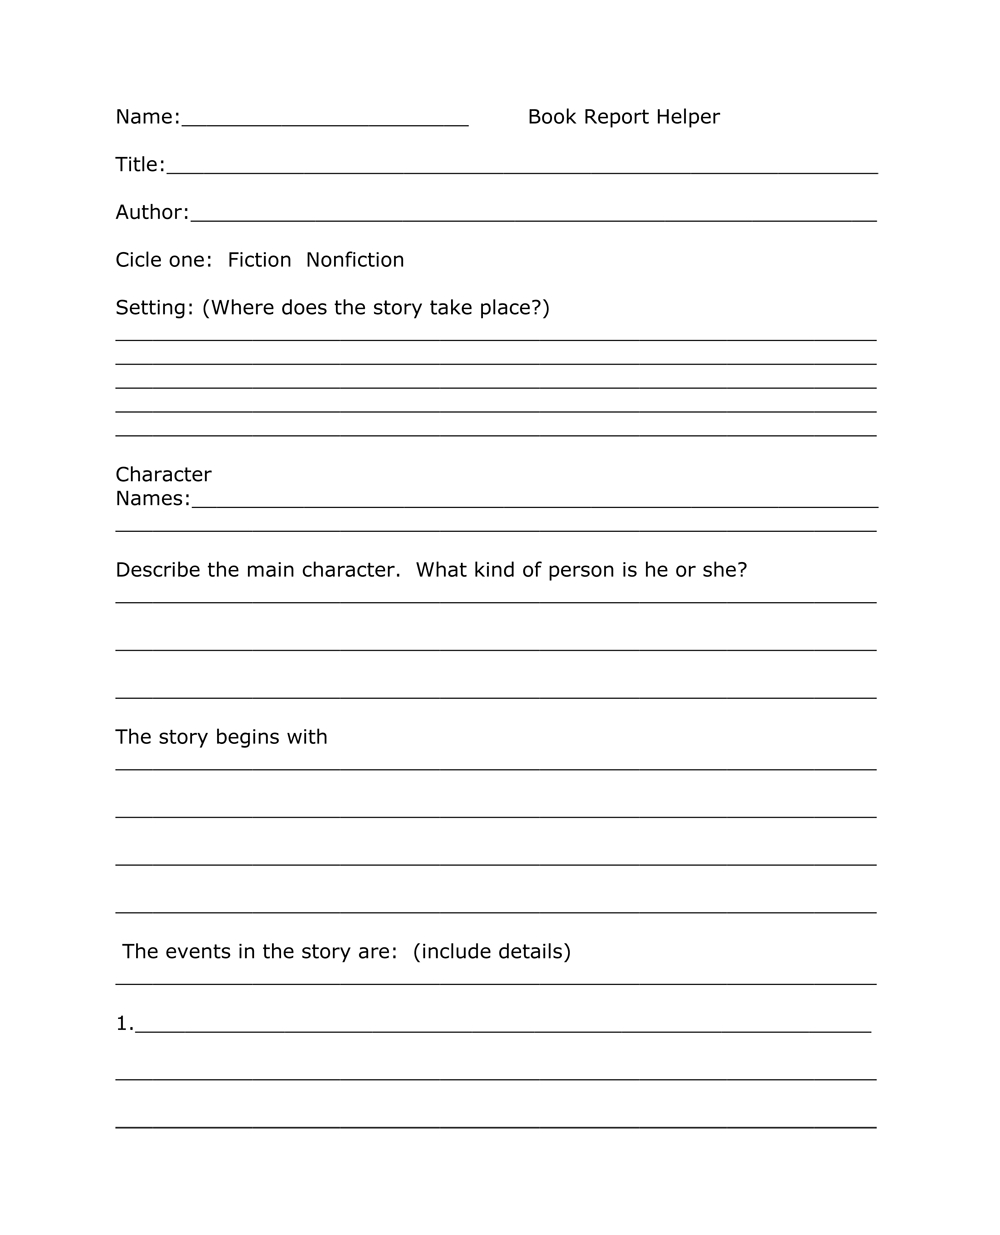 Book Report Templates From Custom Writing Service Bookwormlab Regarding One Page Book Report Template